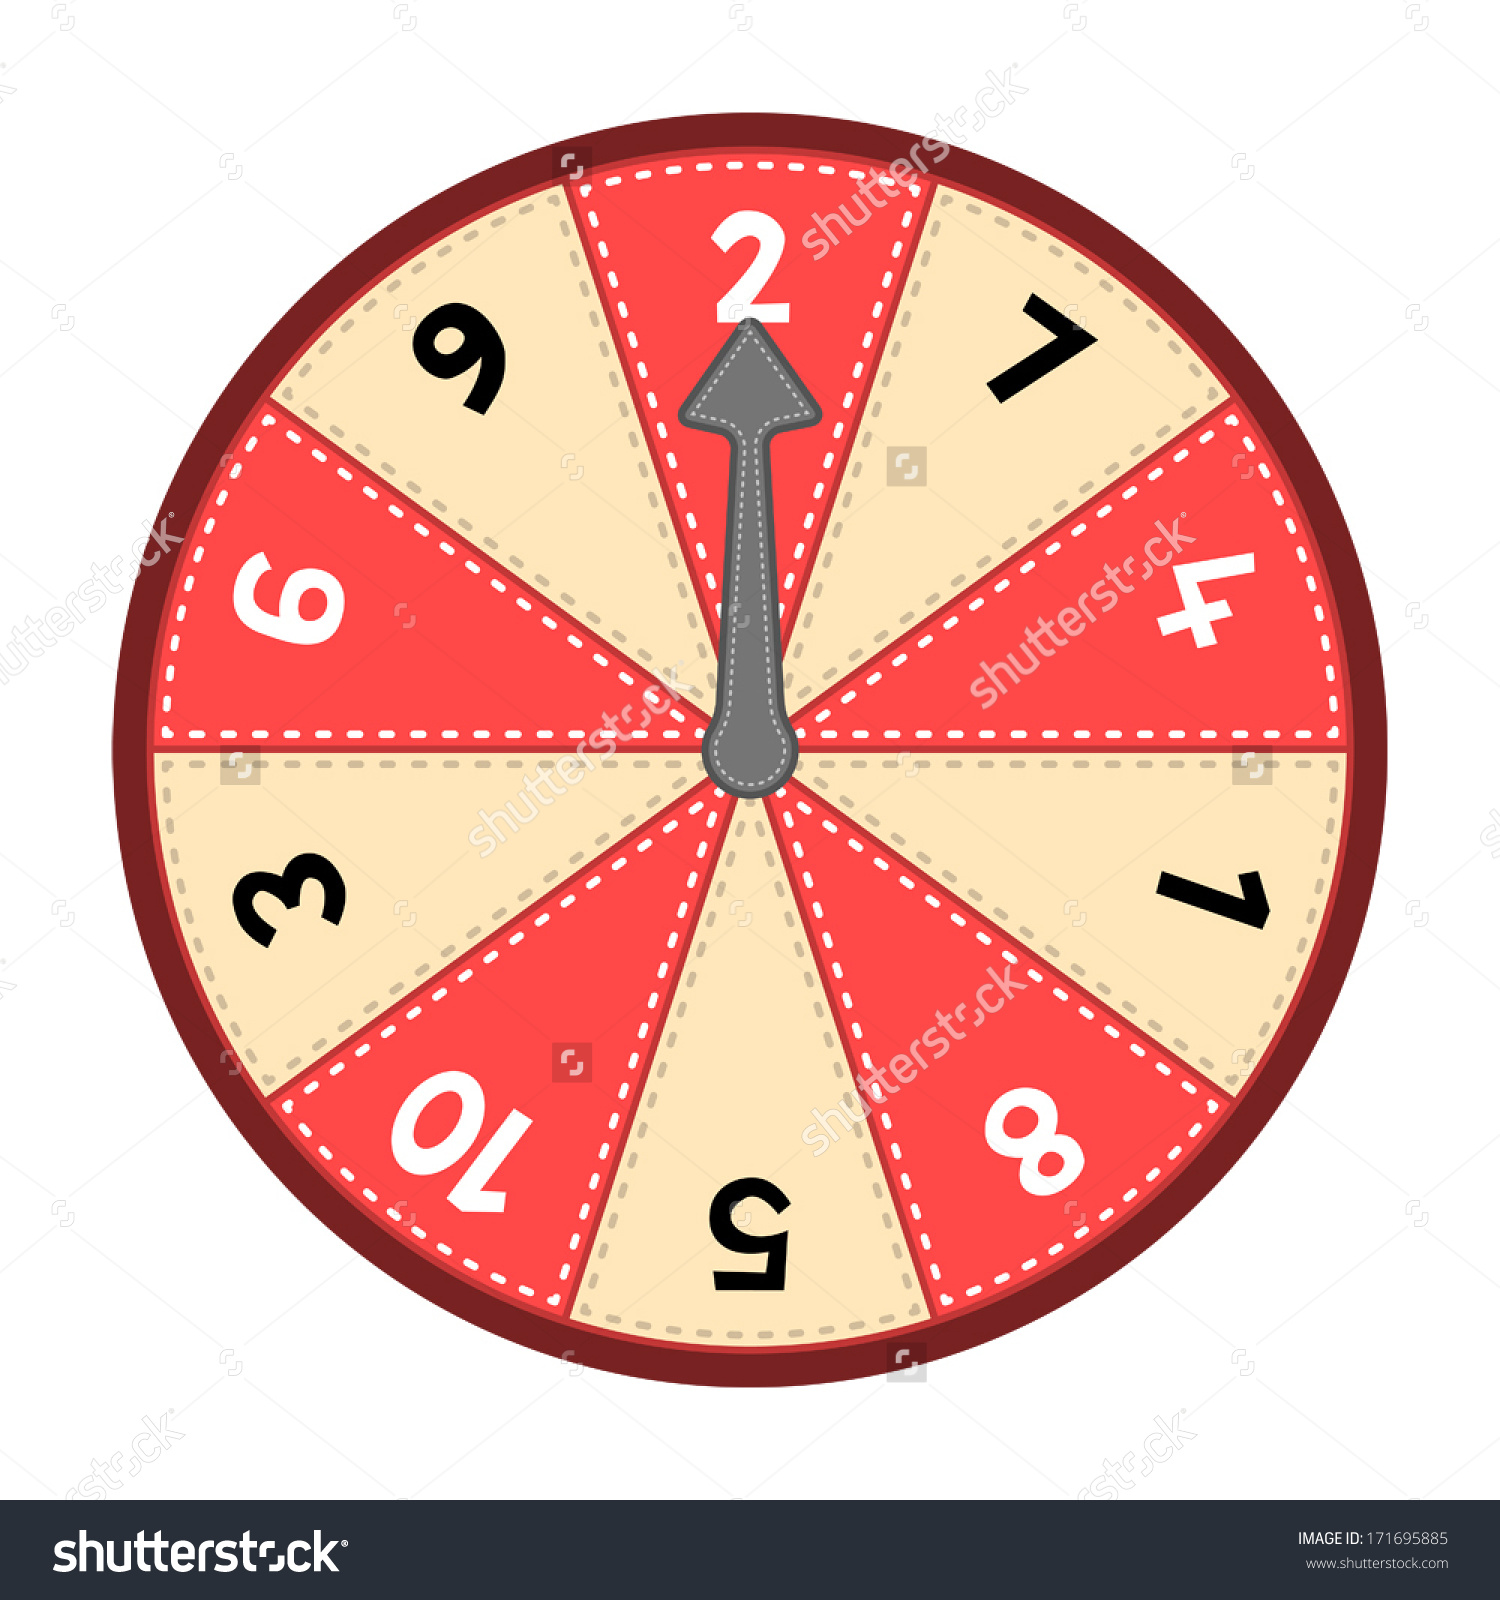 12 Prize Wheel Vector Images Spinning Prize Wheel Clip Art Wheel